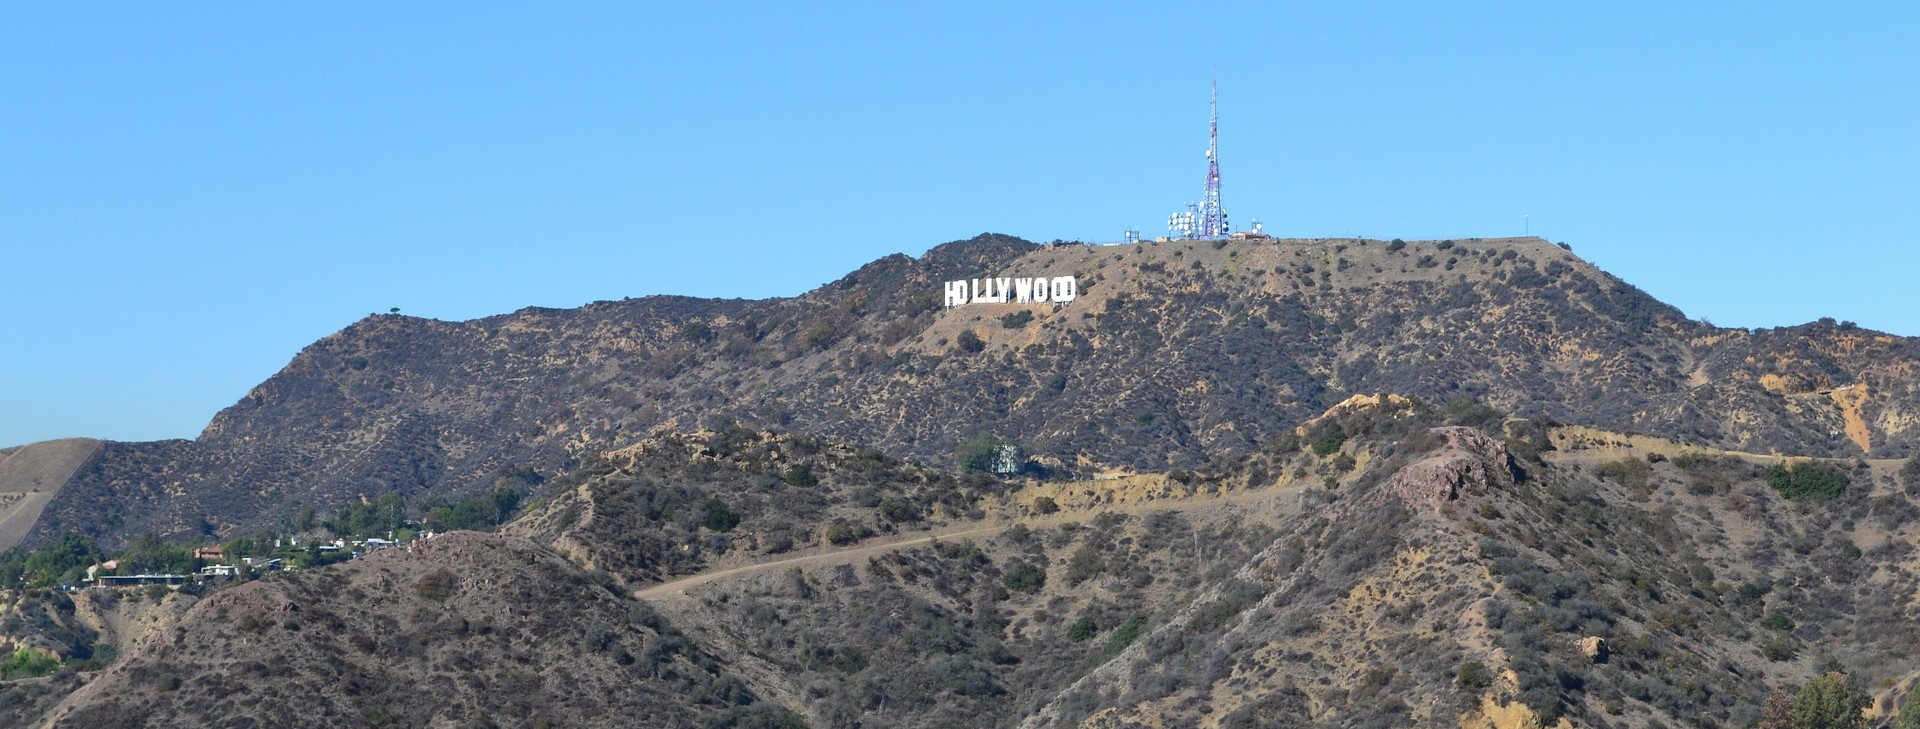 Hollywood Sign in Los Angeles | Breast Cancer Car Donations